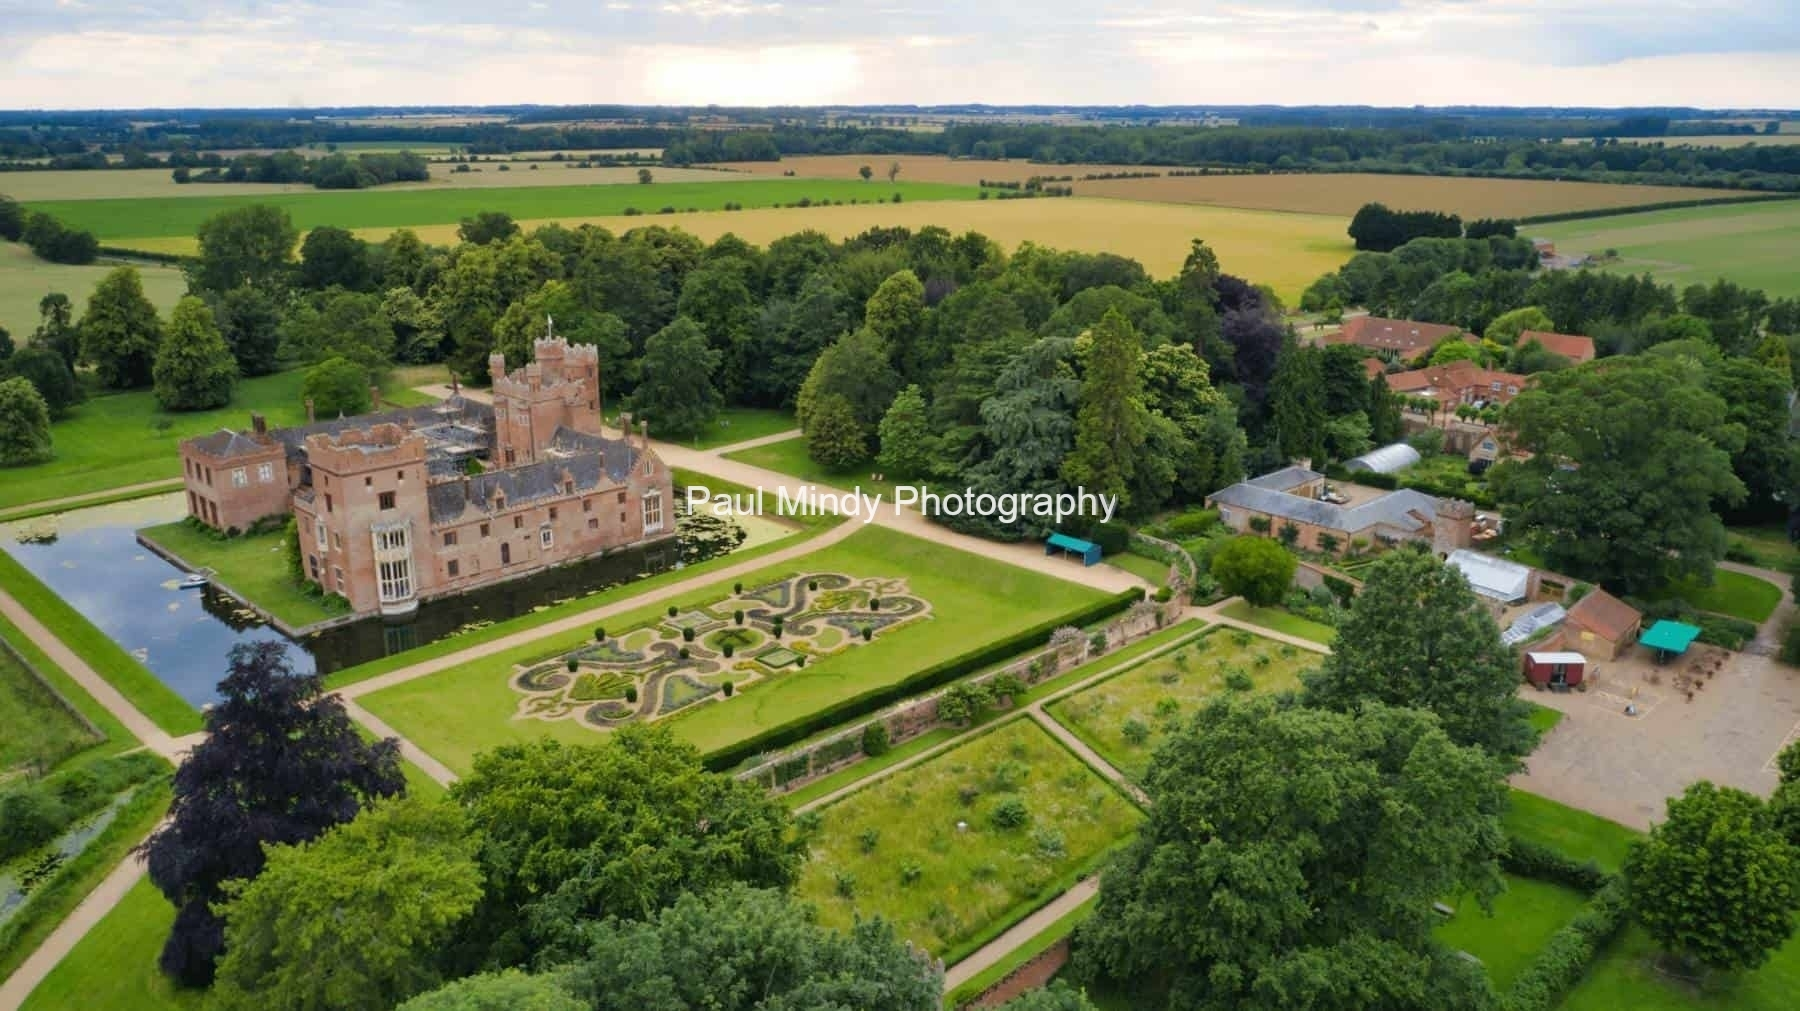 Oxburgh-hall-National-Trust-Aerial-Photography-Drone-Imagery-op